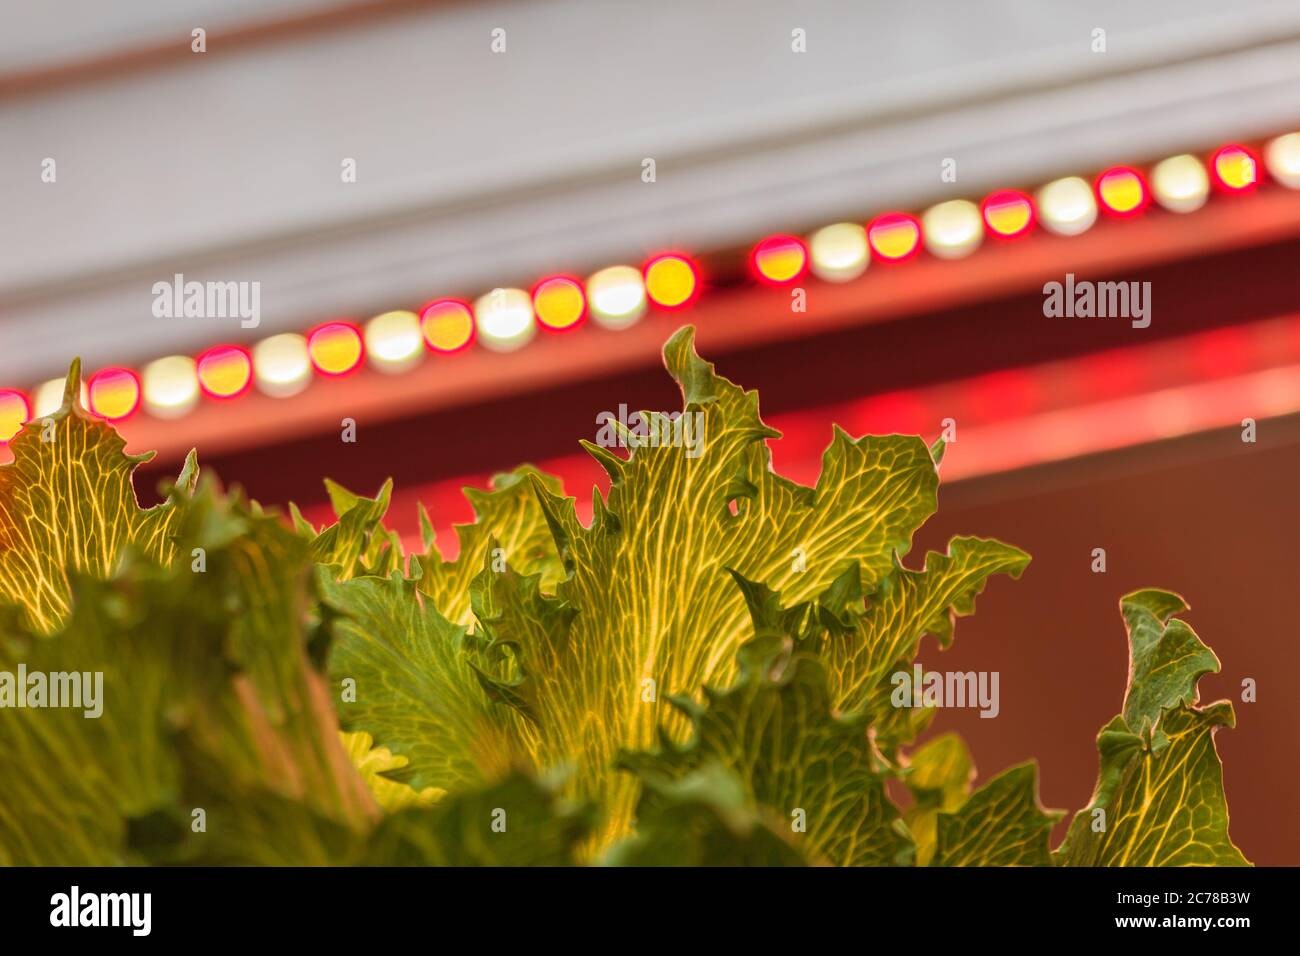 LED lighting used to grow lettuce inside a warehouse without the need for sunlight Stock Photo